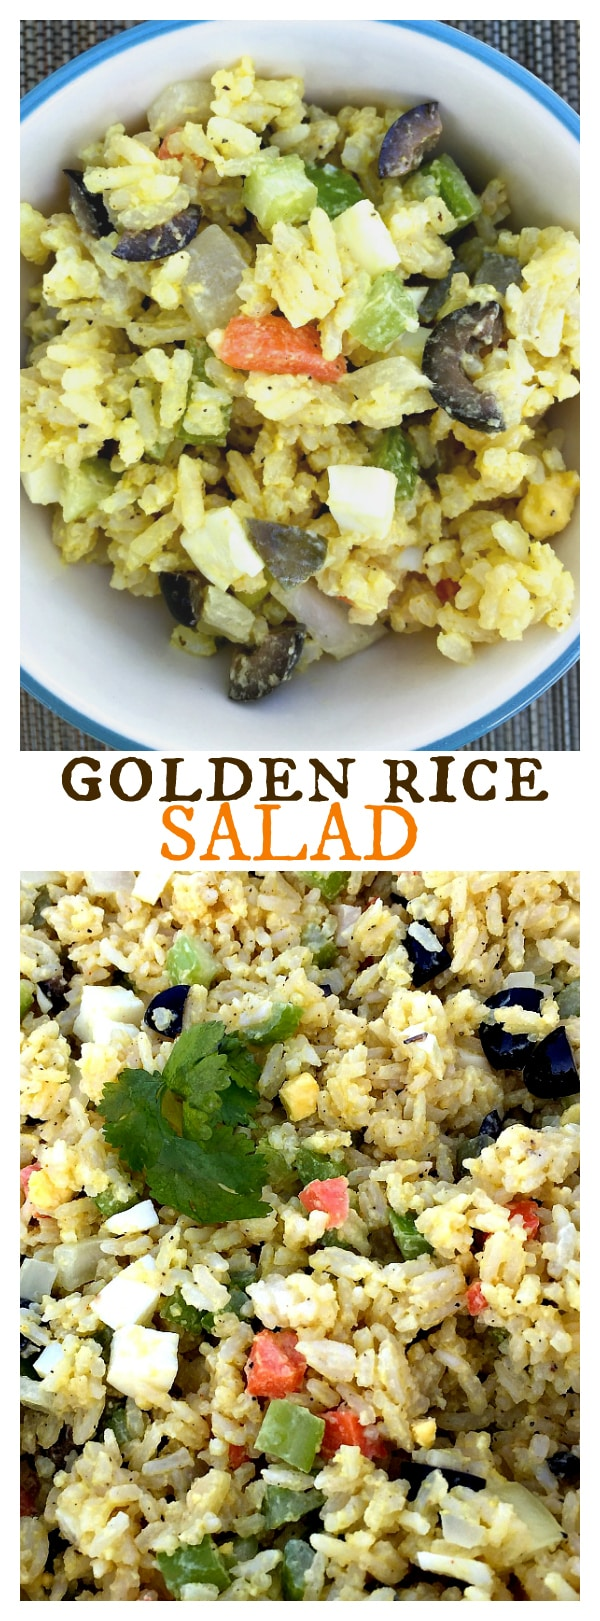 Golden Rice Salad - delicious side or potluck salad with potato salad flavors!